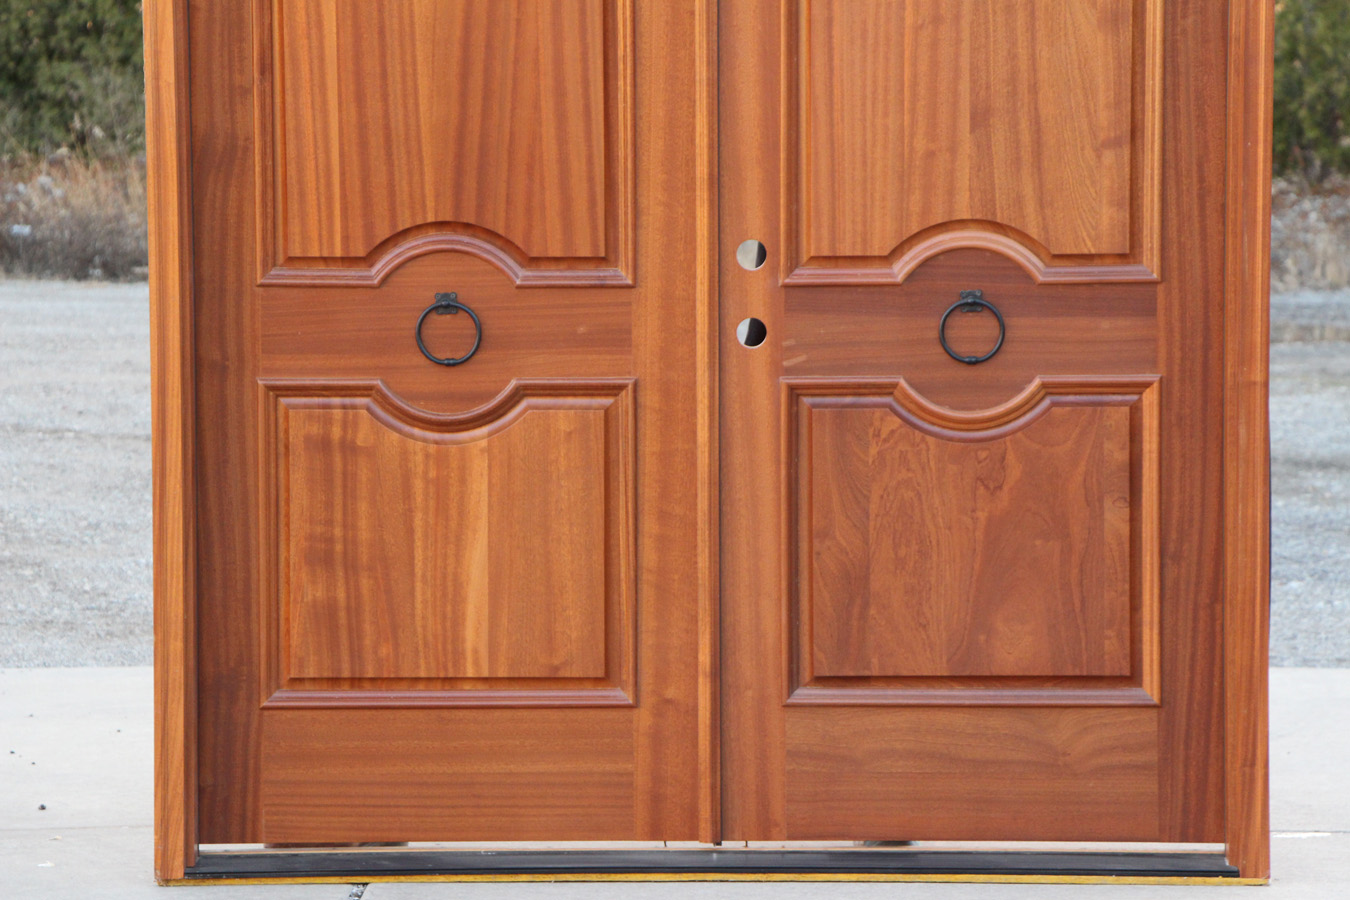 900 #975734 Arched Double Doors Exterior Mahogany save image Arch Doors Exterior 39771350